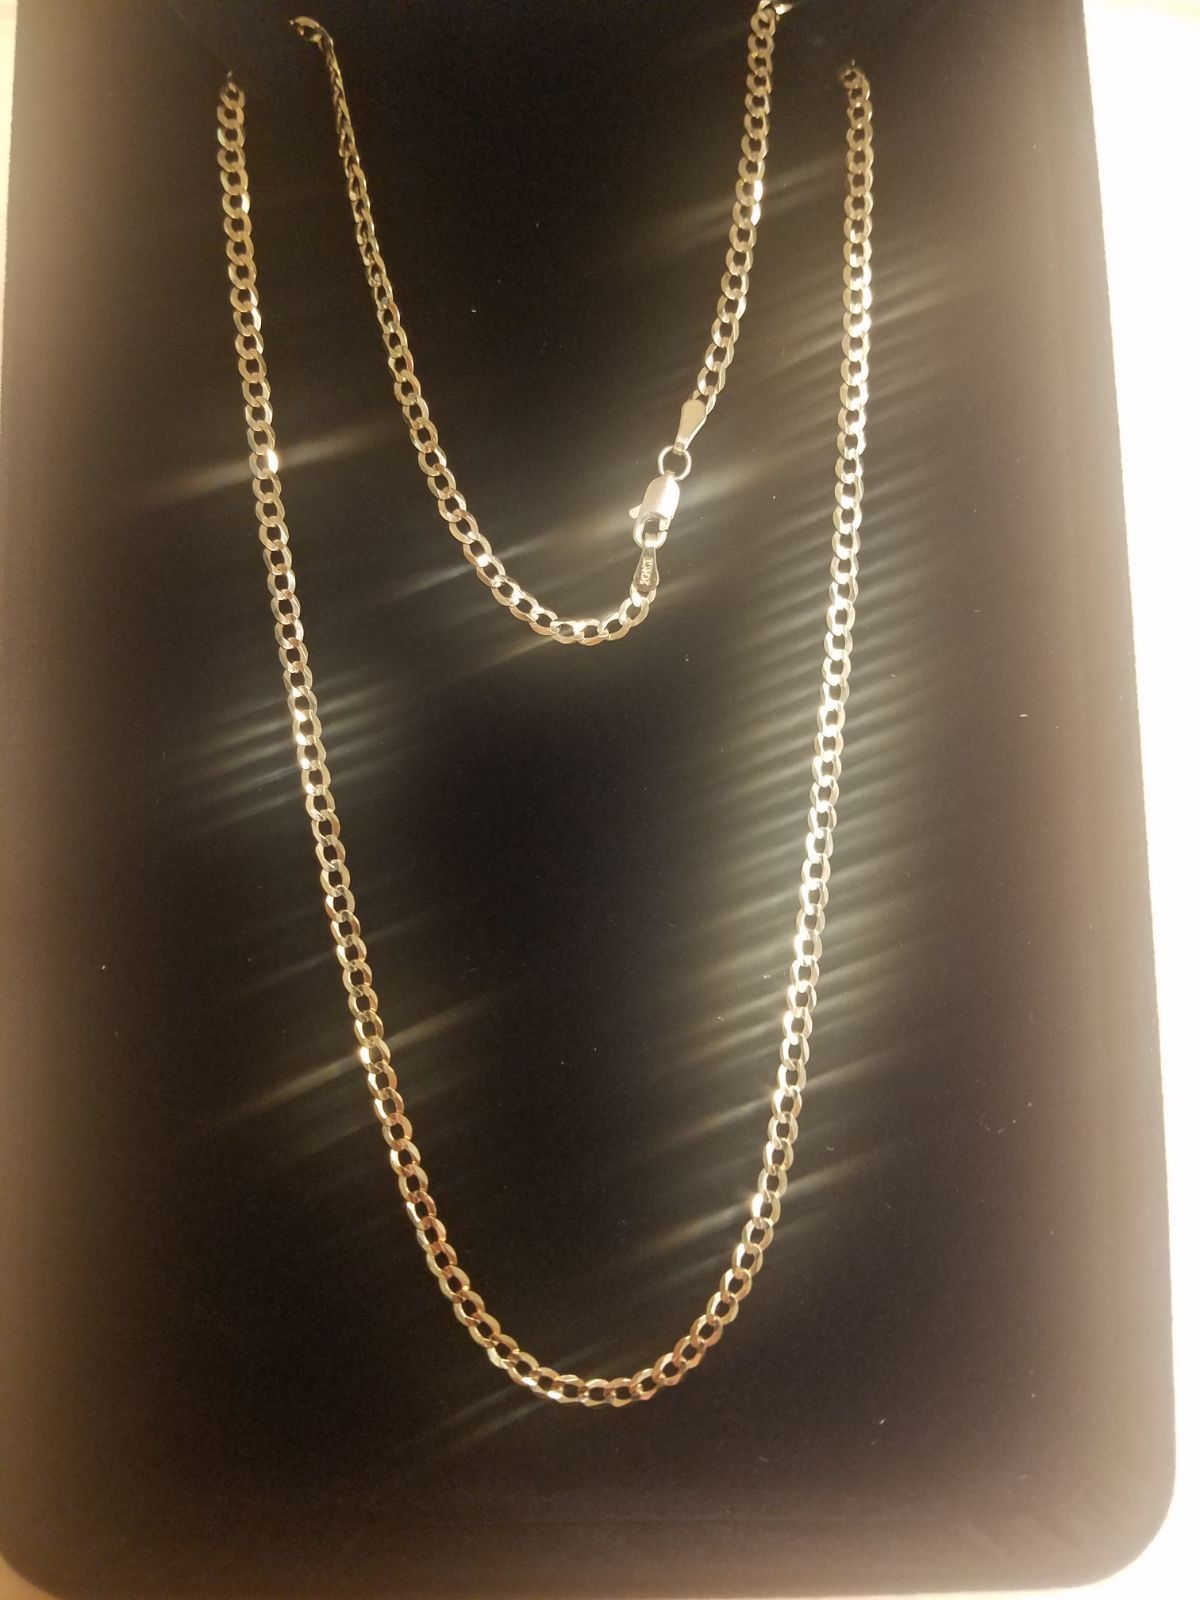 10k Solid Gold Curb Link Chain Not Hollow Not Semi Hollow Not Gold Plated Straight From The Manufacturer Never Been Worn Solid Gold Chain Stamped Necklaces